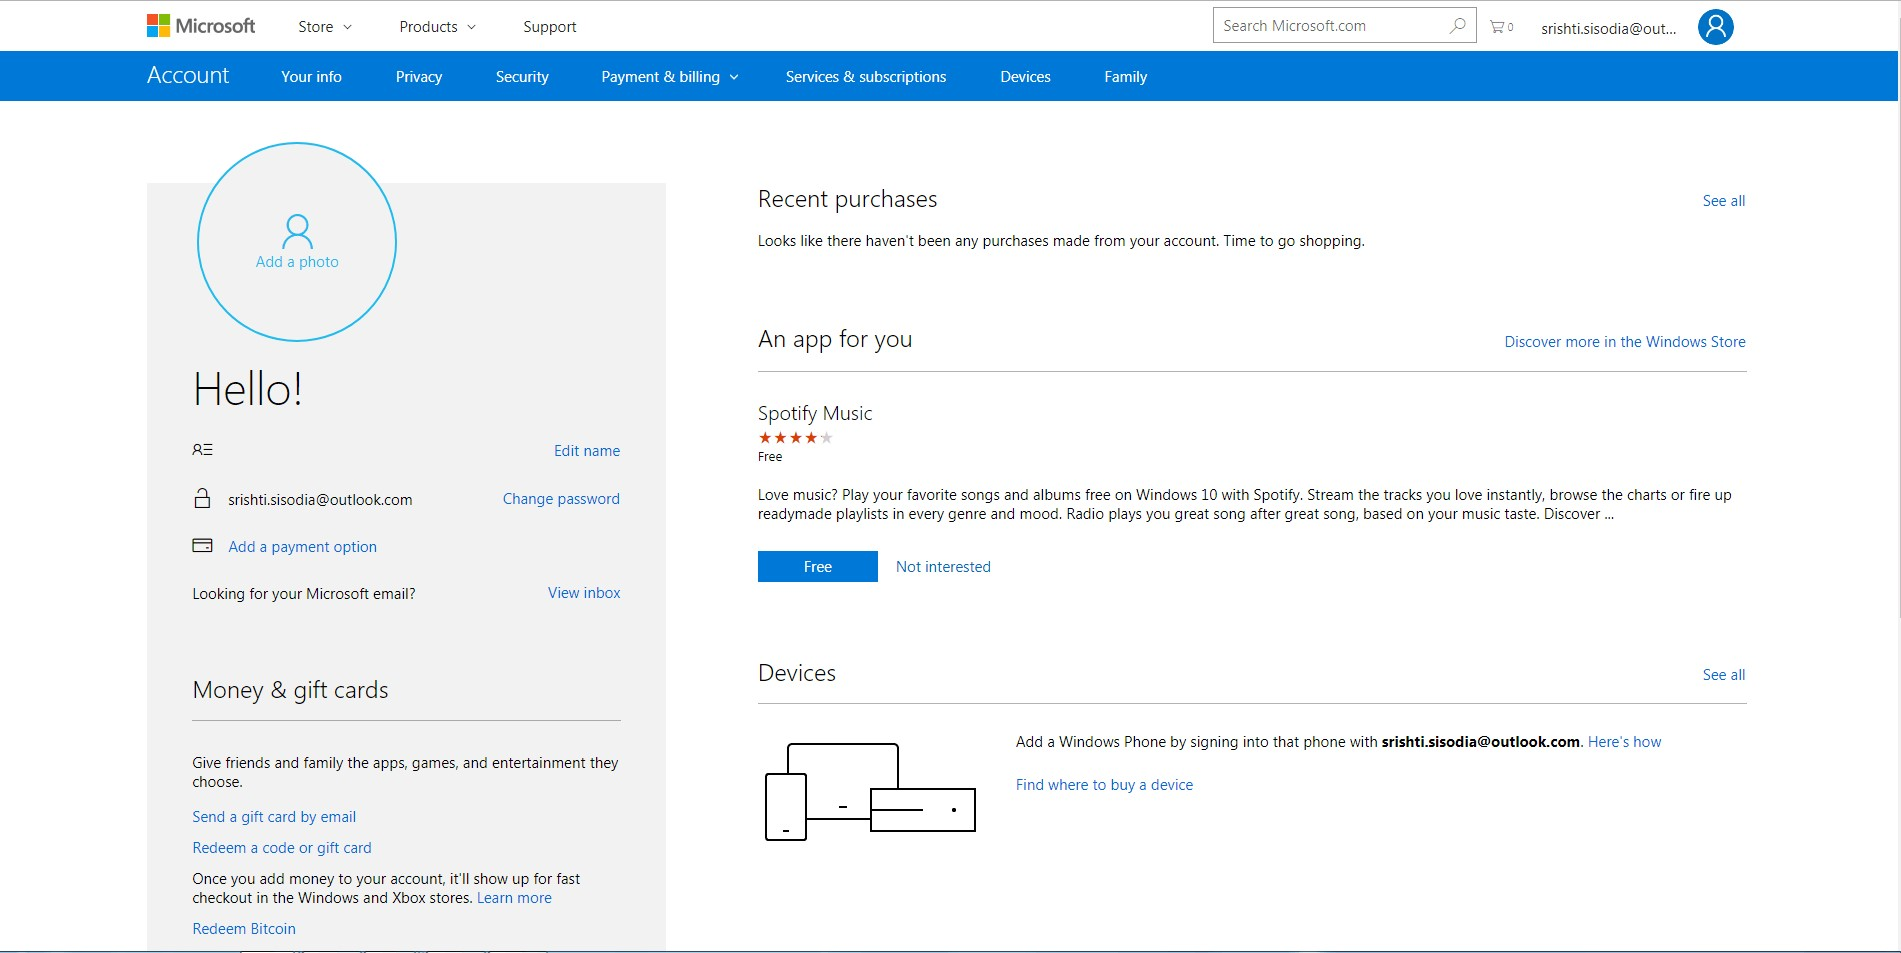 Microsoft account home page